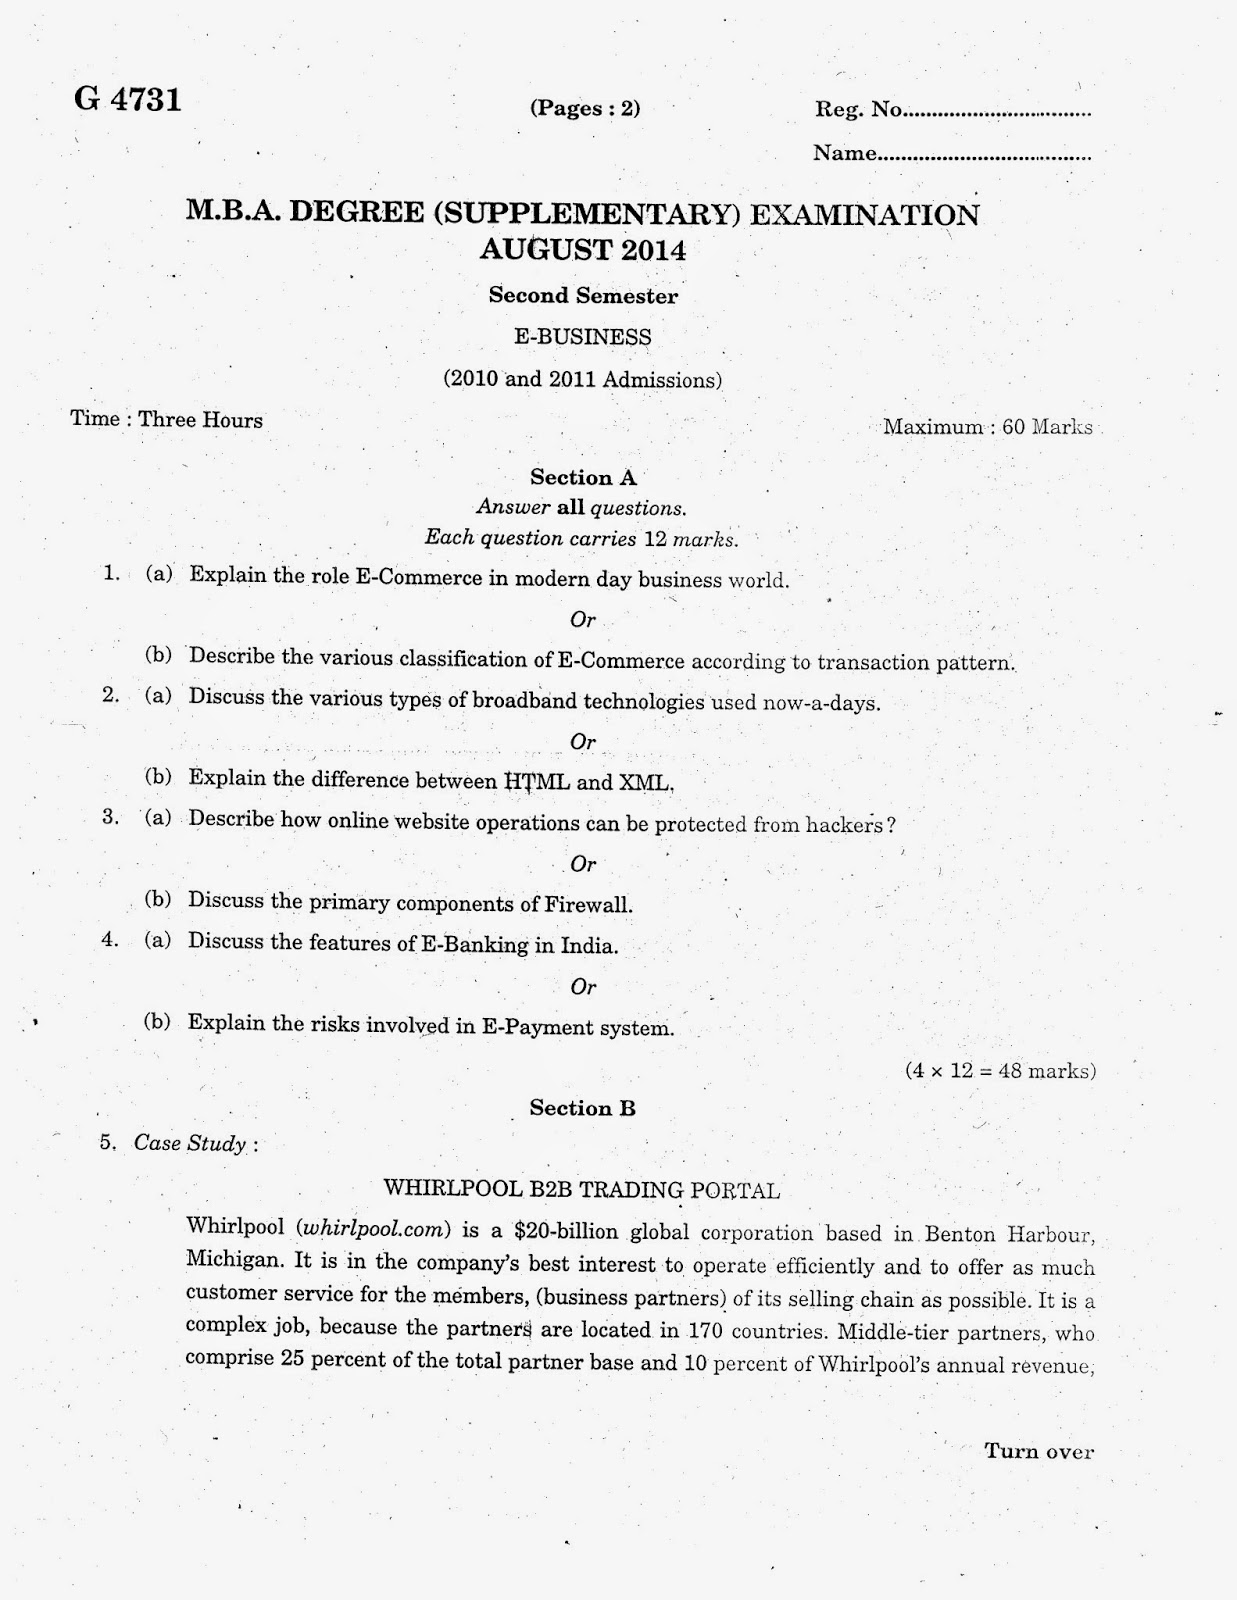 2nd semester mba papers isbm Jntua mba 2nd semester previous papers – welcome to the page of jntua mba 2nd semester previous question papers students of jntu anantapur university can find the previous papers here we can assure that the previous papers provided here are accurate to get more details candidates can check this post completely.